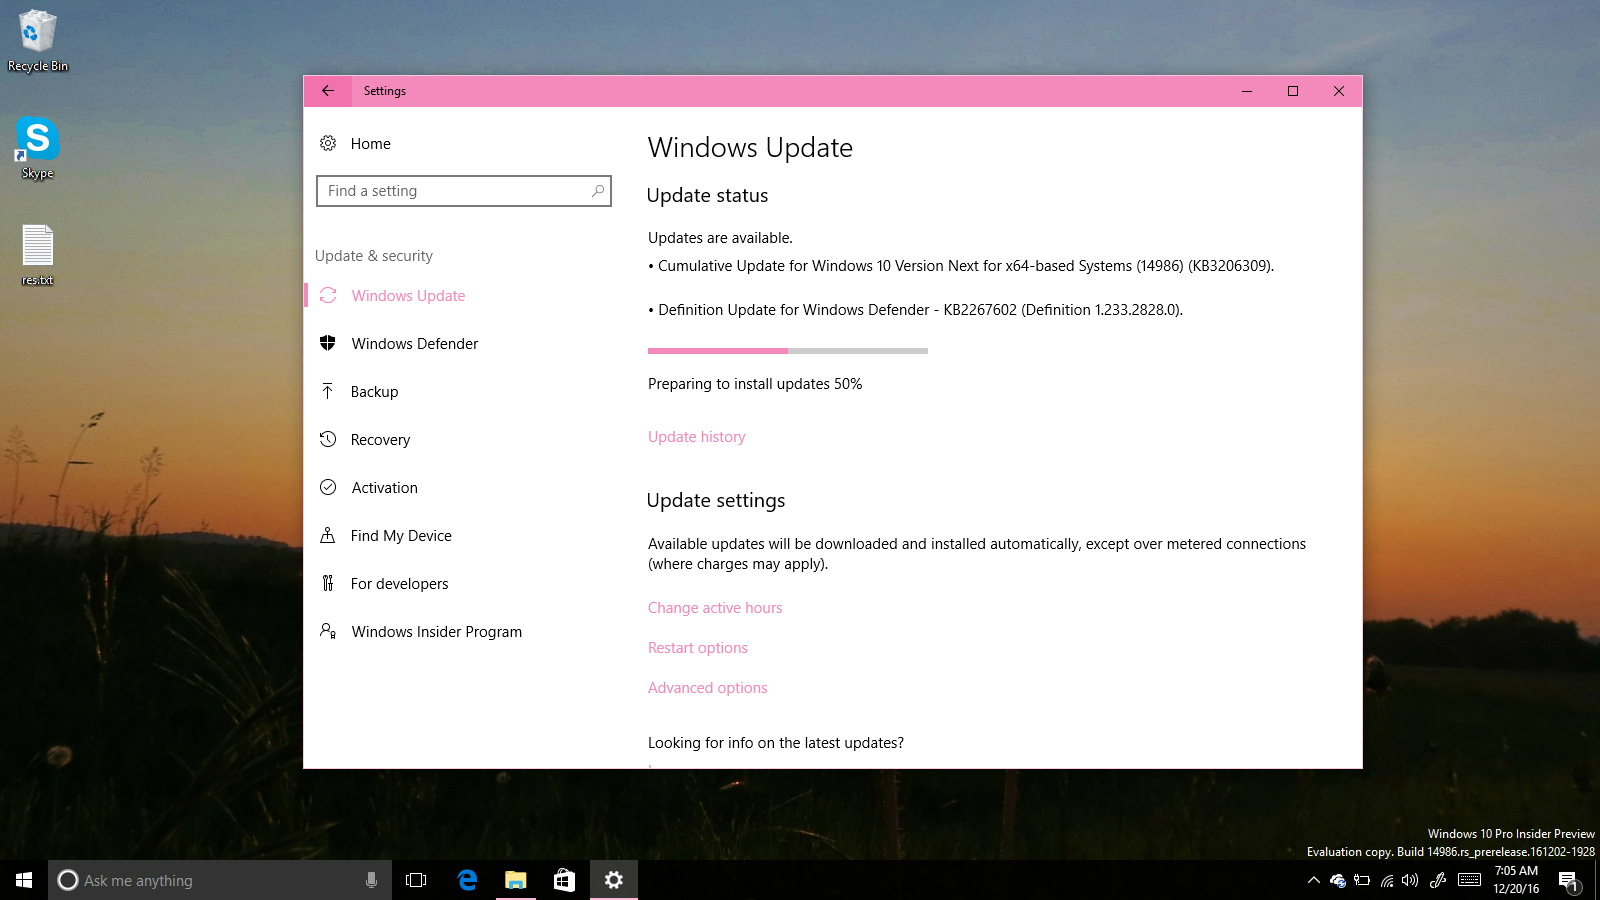 KB3206309 for Windows 10 Creators Update